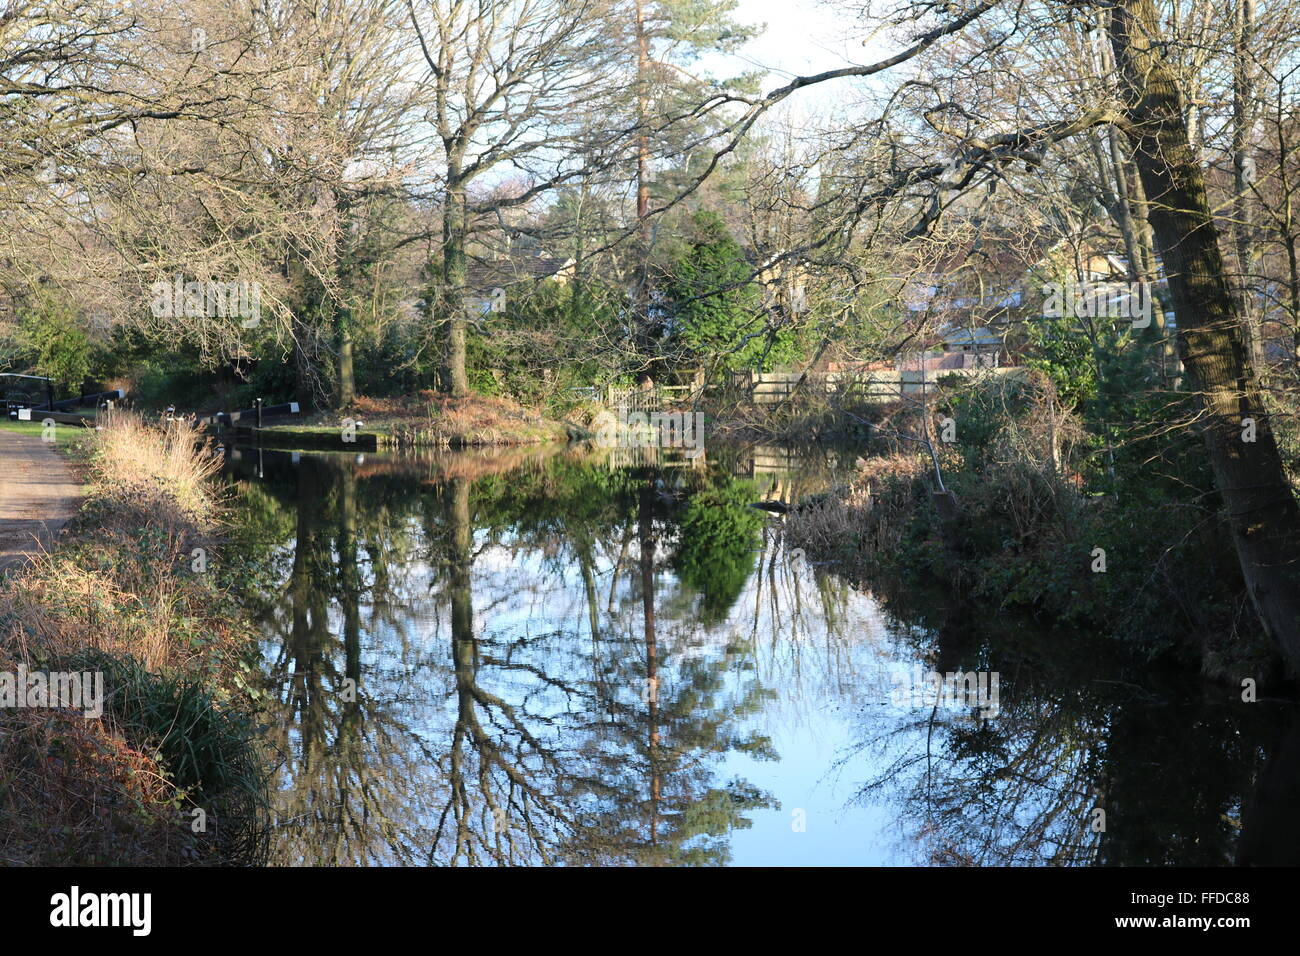 The Basingstoke Canal near Brookwood, Woking, Surrey. - Stock Image